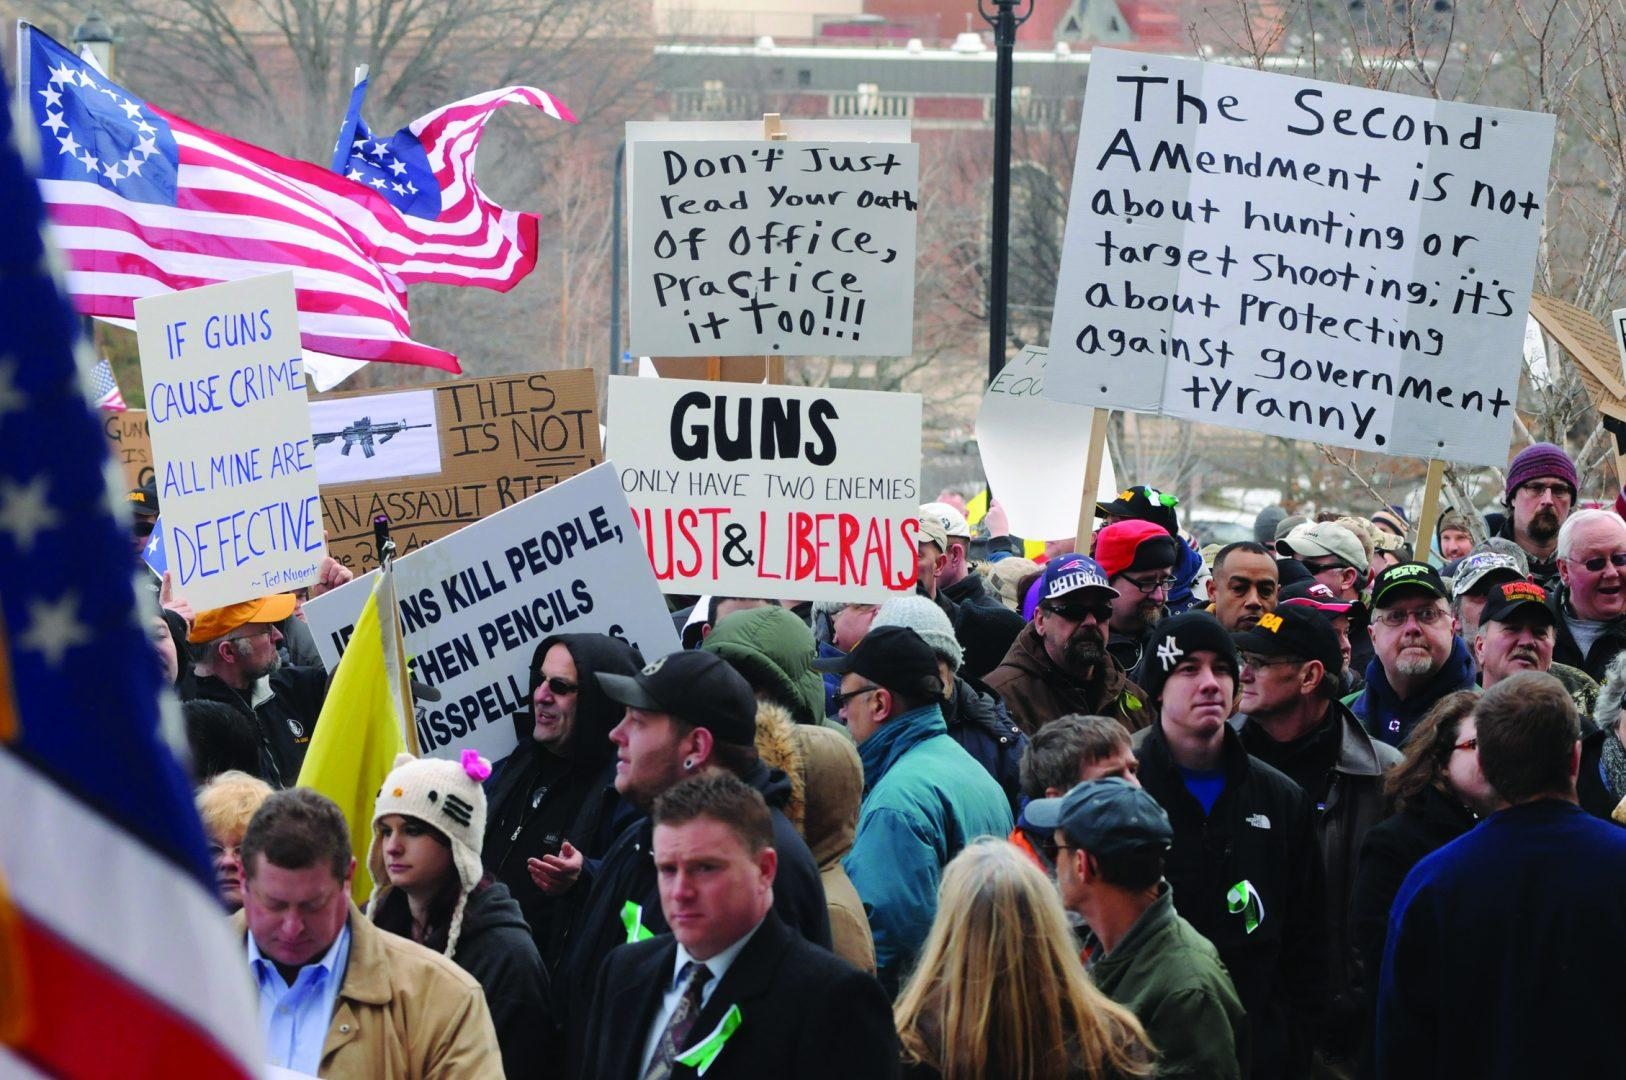 In a nation with such extreme opposing views on gun control, compromise is the first step to protecting lives. (Rick Hartford/Hartford Courant/MCT)